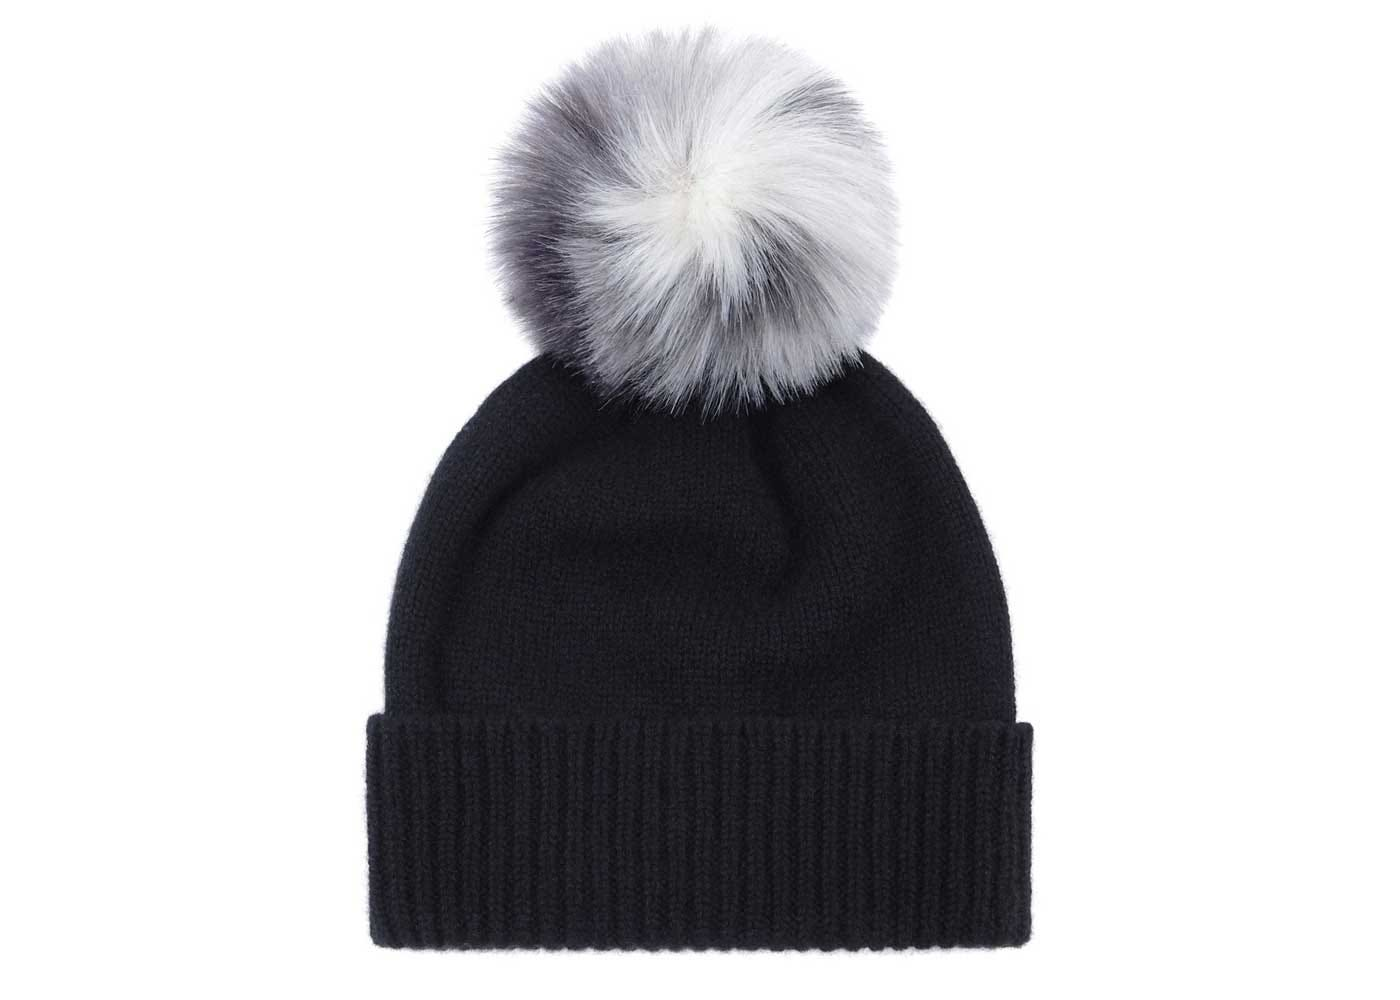 2c52821d52f Helen Moore Pom Pom Beanie Hat - Discontinued